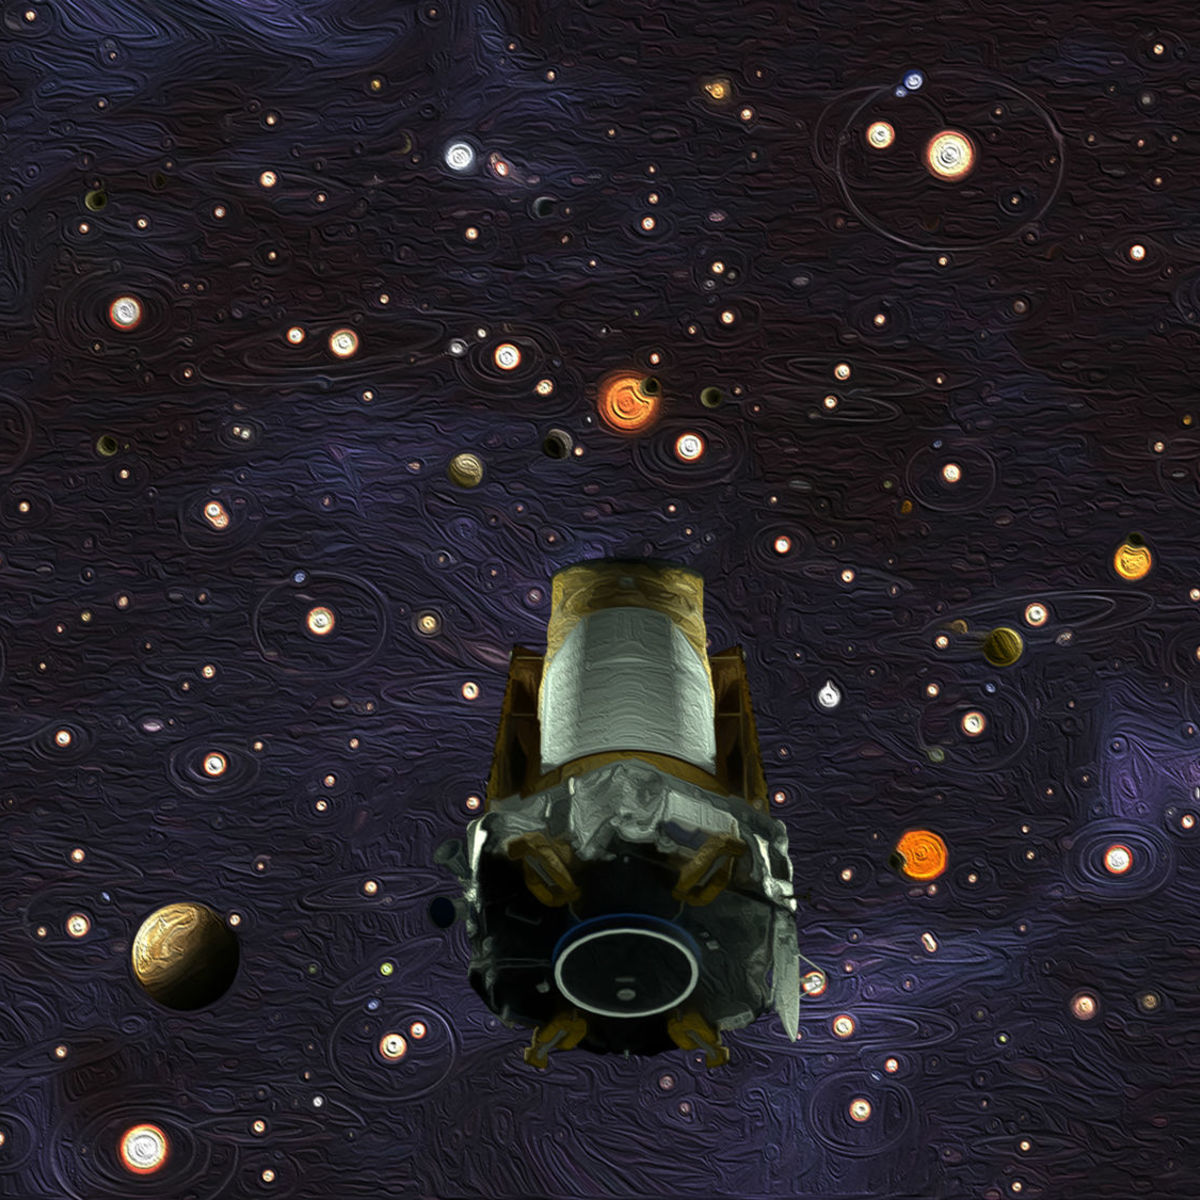 These were the voyages of the Kepler space telescope